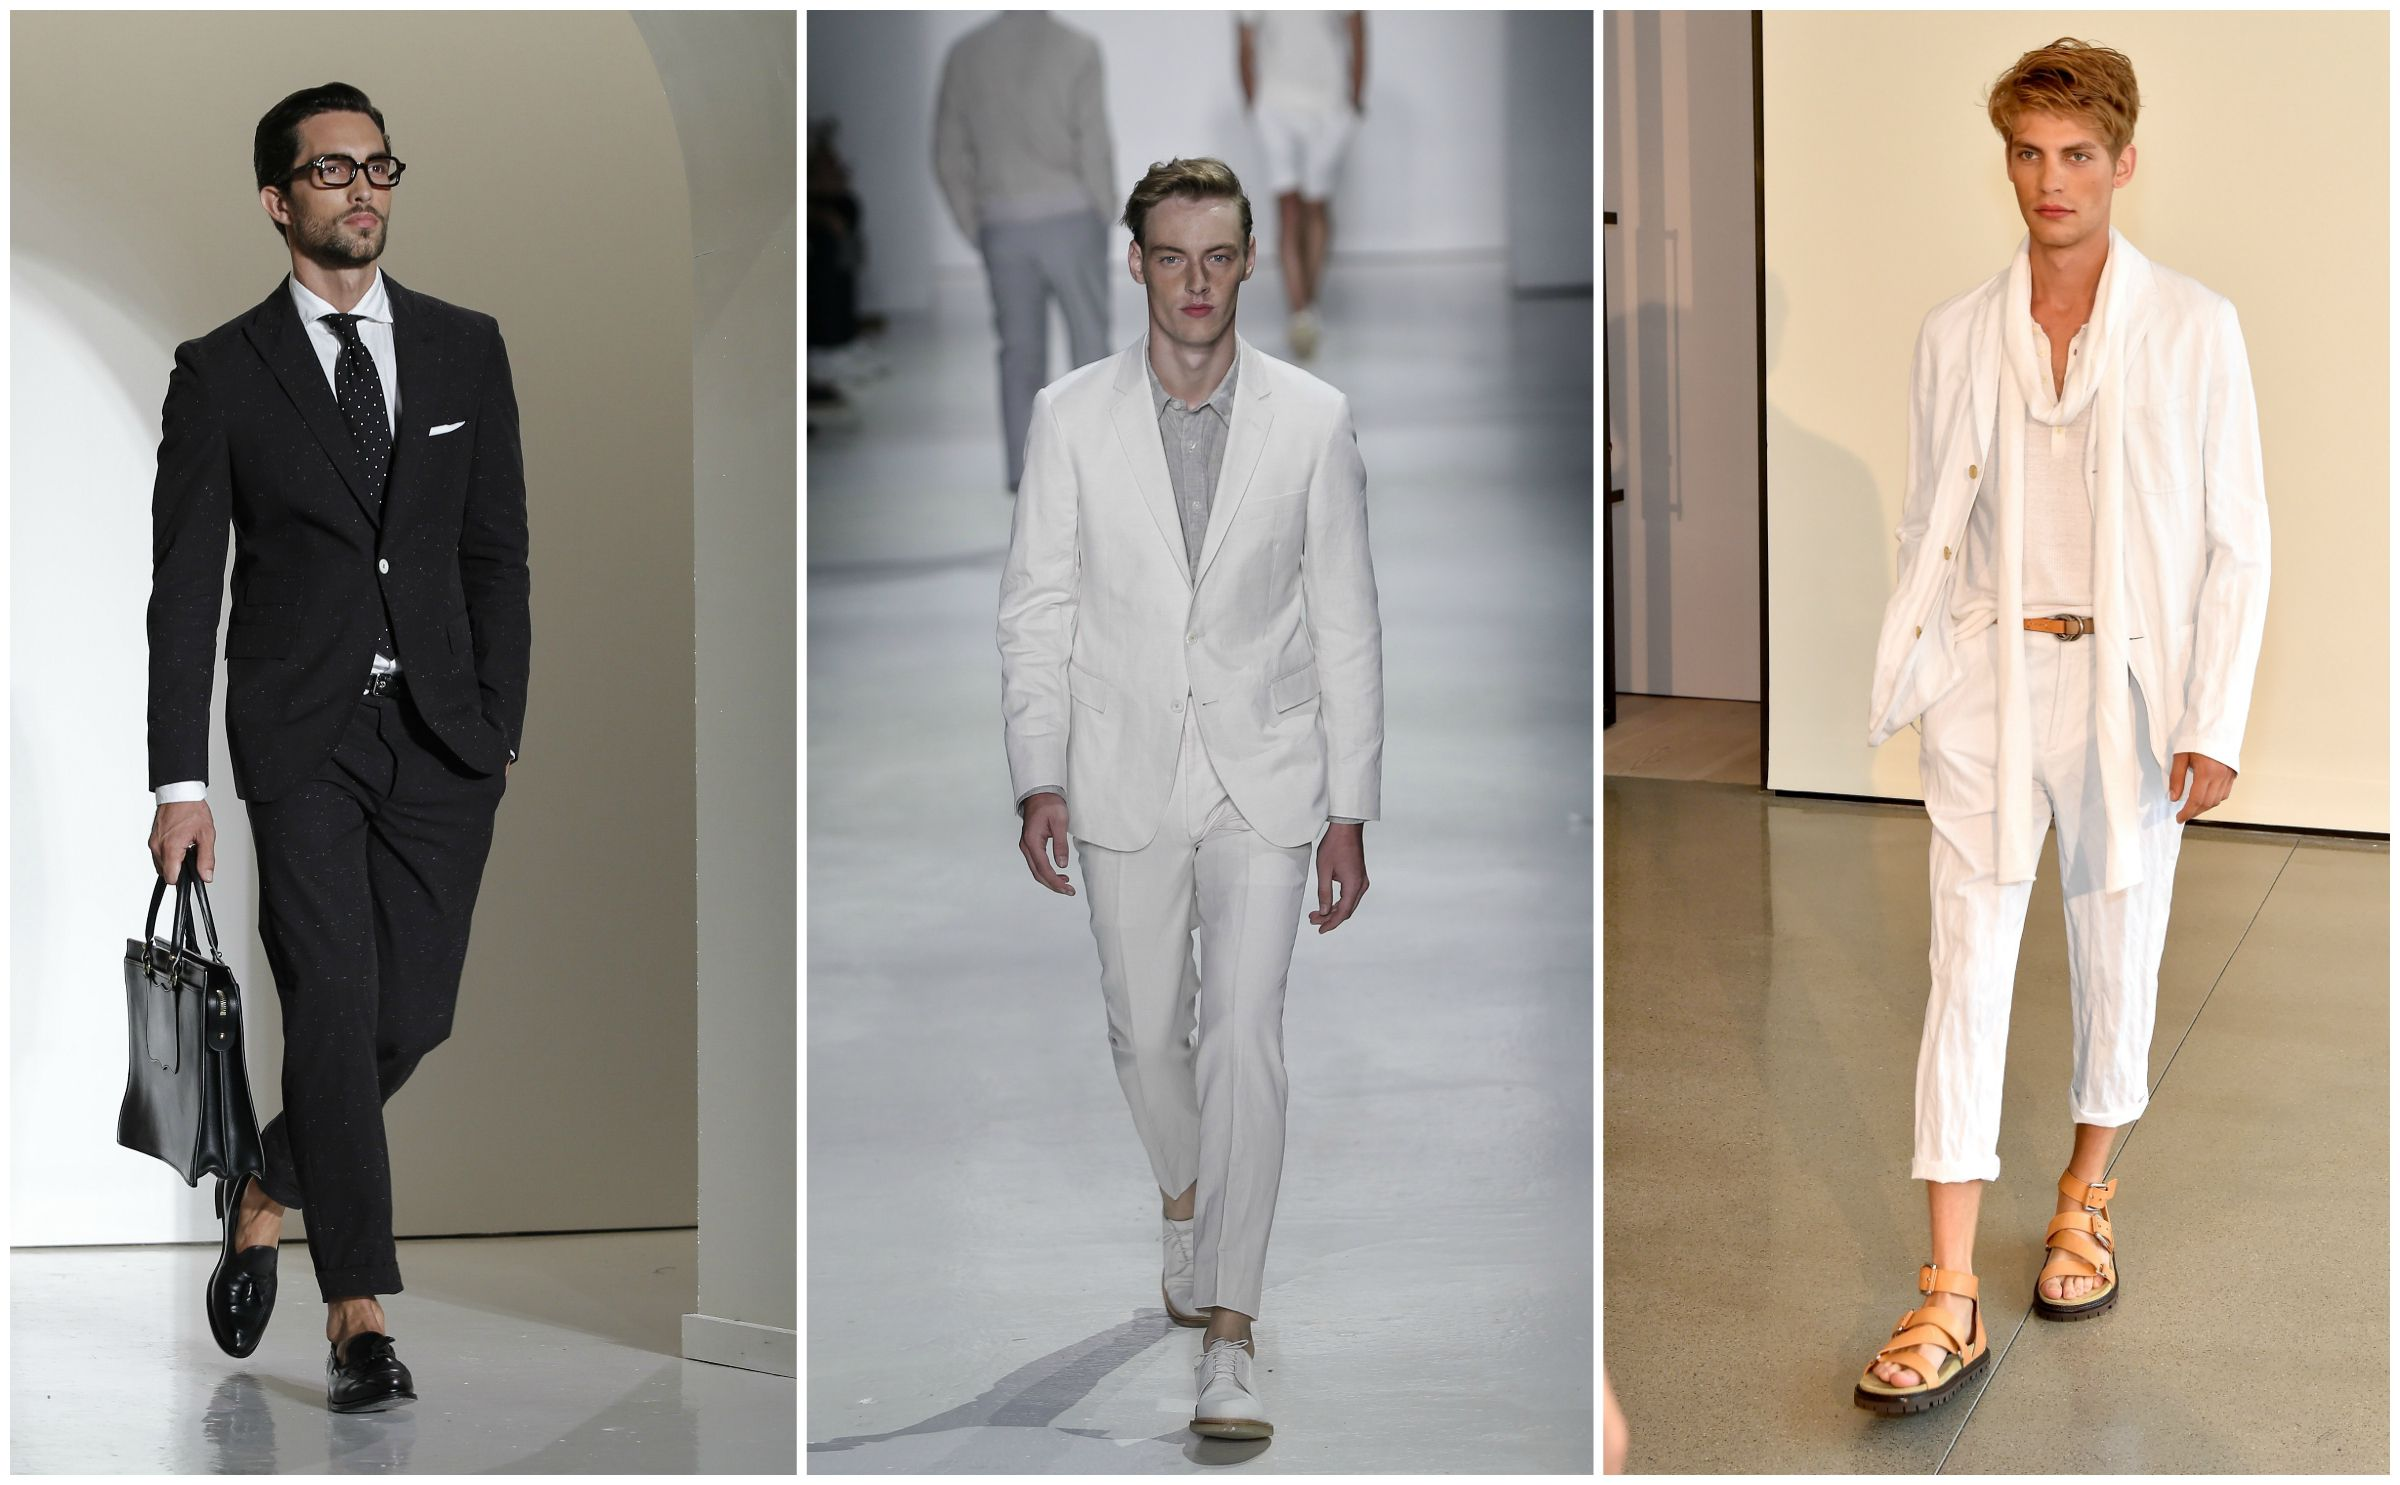 Looks from from the spring-summer 2016 shows of Michael Bastian, Todd Snyder, and Michael Kors.